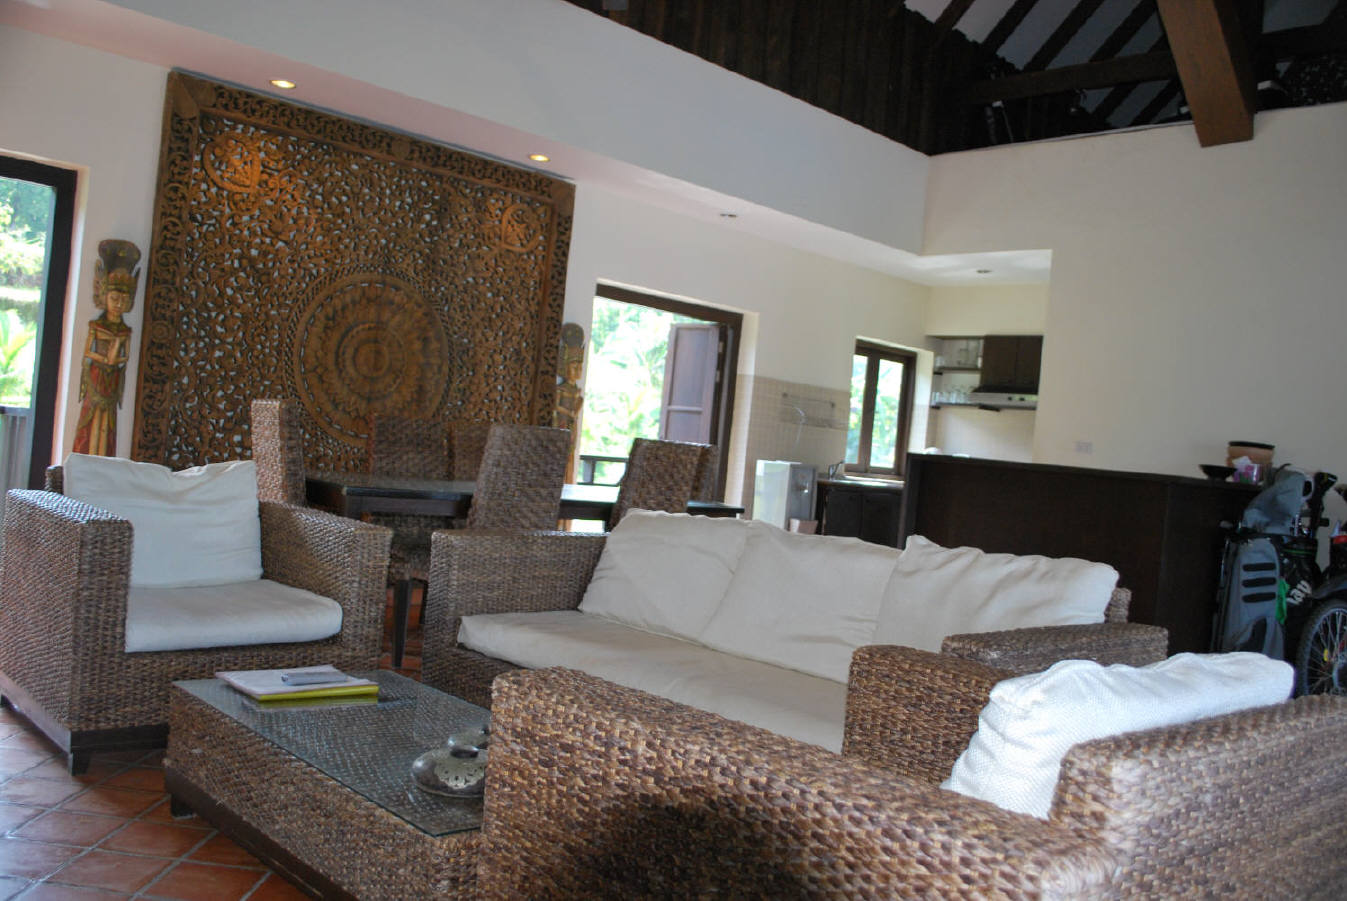 New Photo 4-Bedroom Apartment 230 Sq.m. Kaleane Krabi Villas - Nittaya